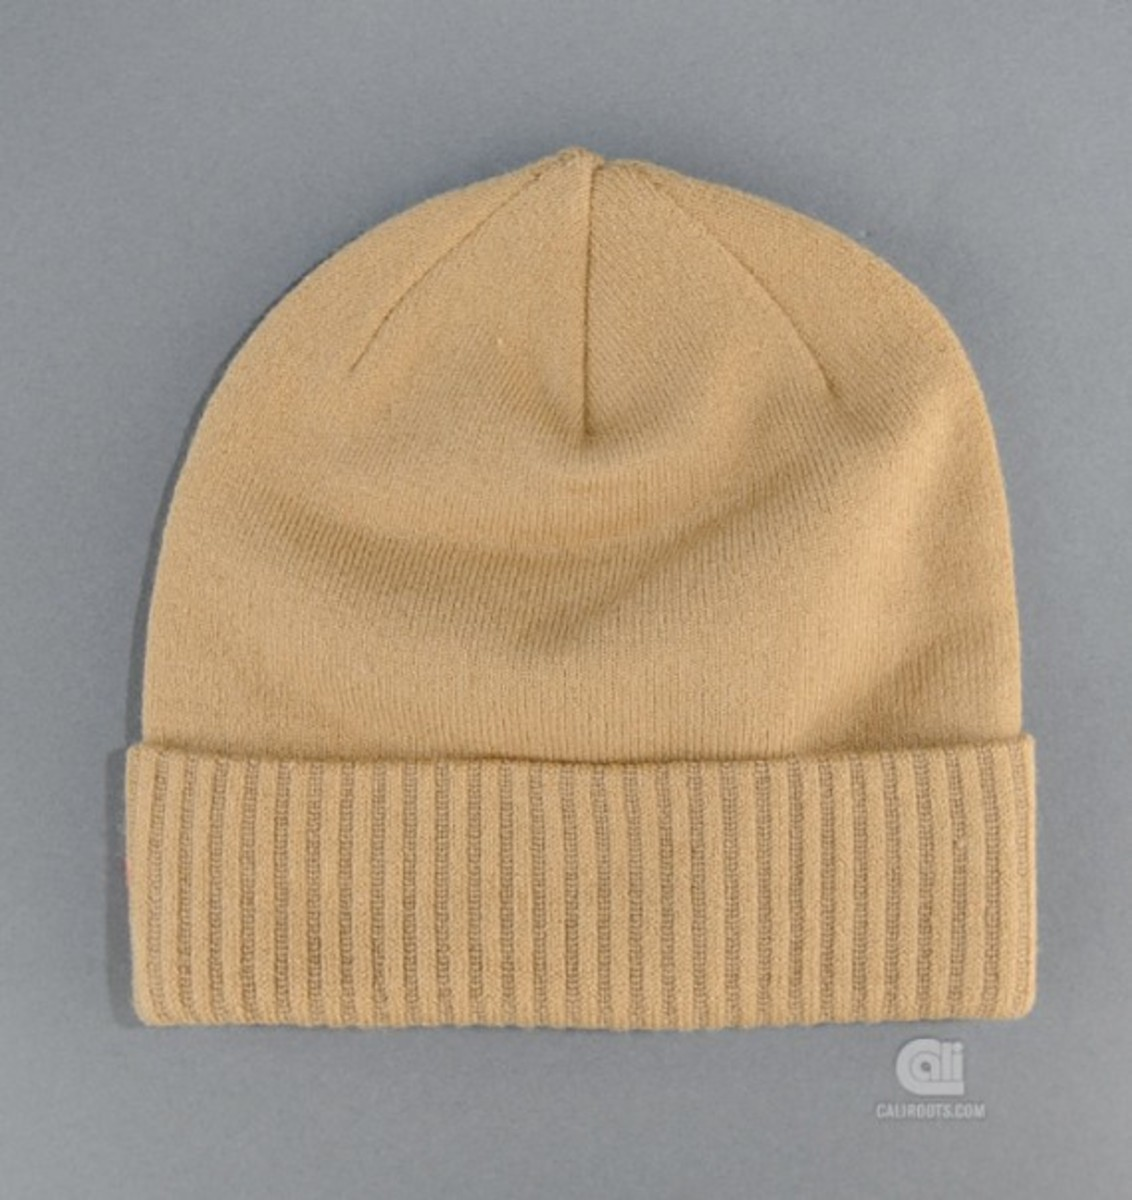 acapulco-gold-angry-lo-bear-beanie-02